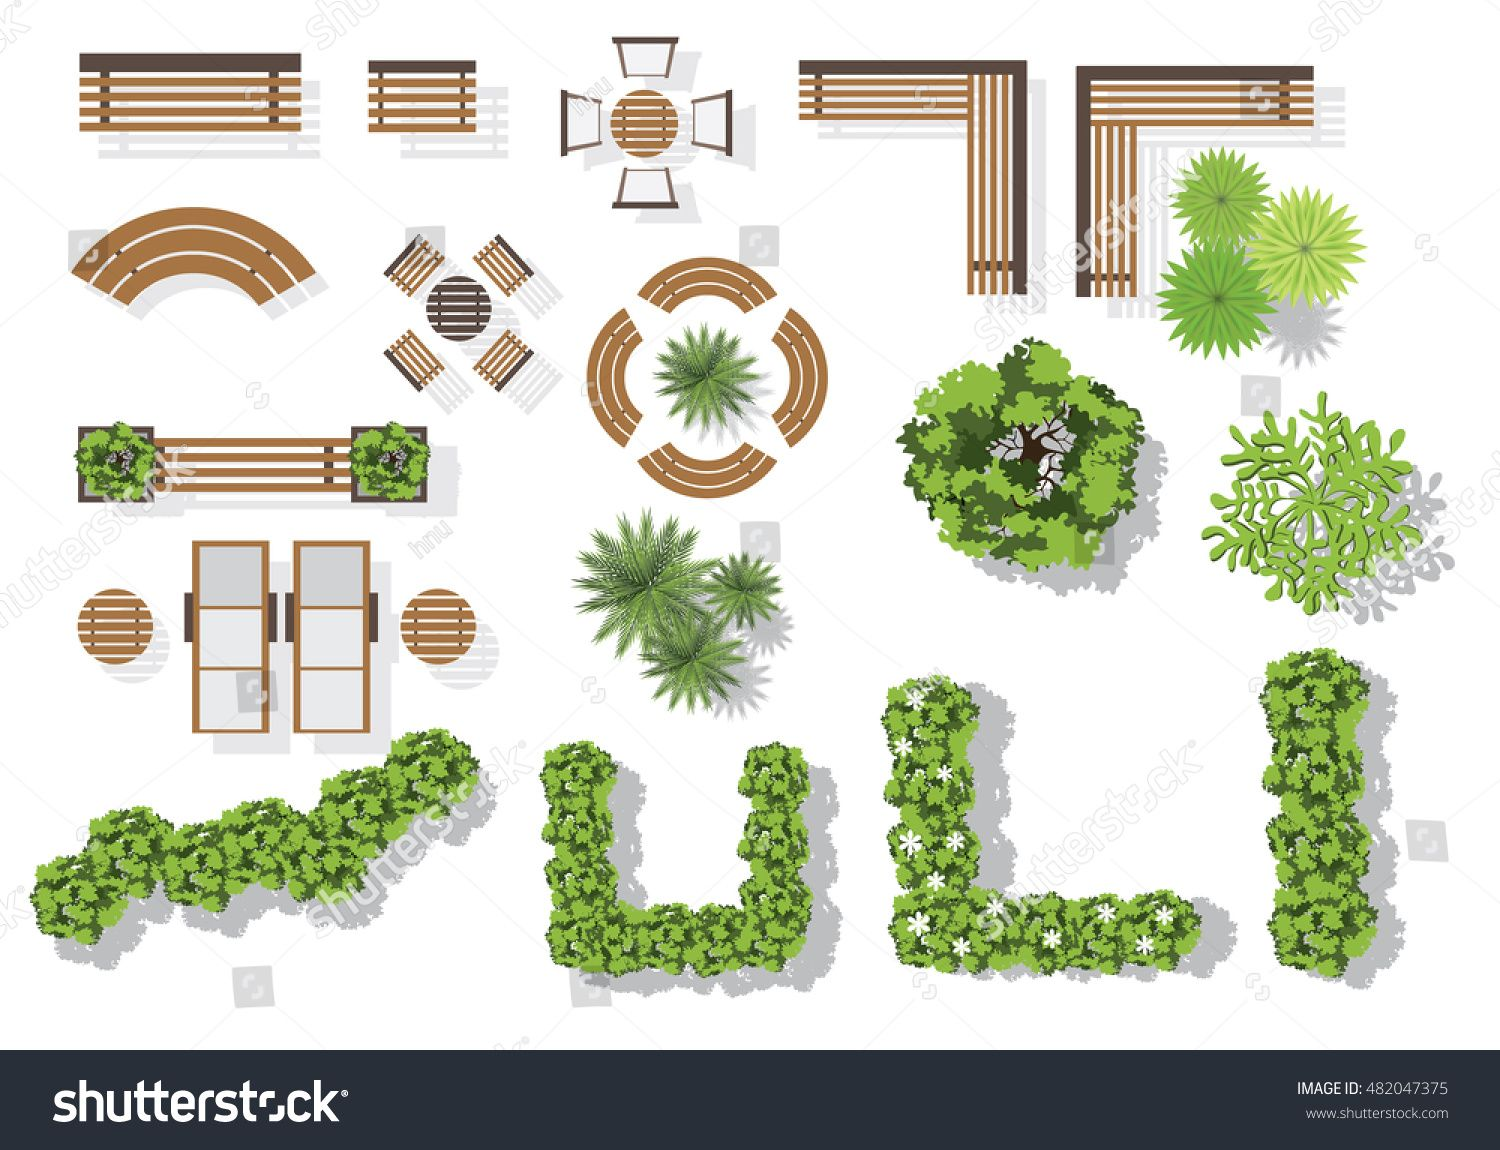 Set Of Vector Wooden Benches And Treetop Symbols